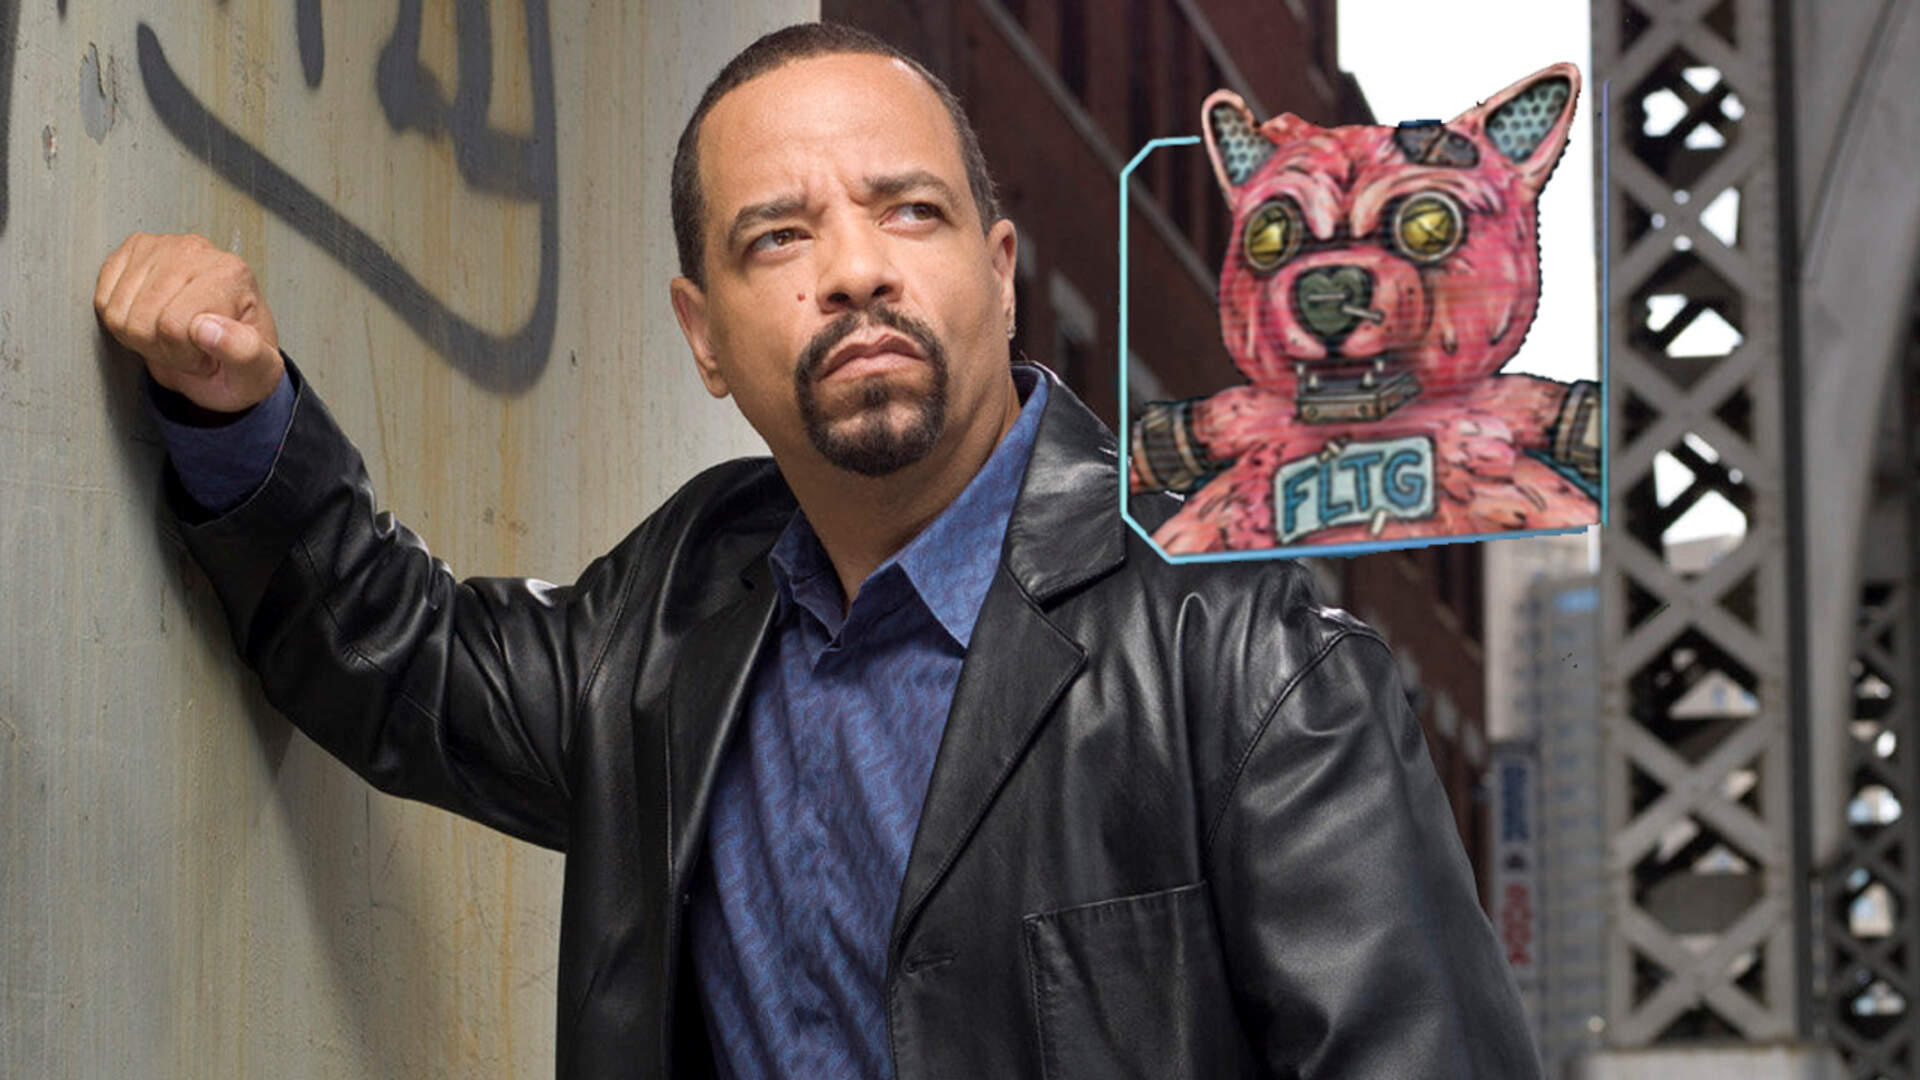 Ice-T Revealed as Ornery Stuffed Bear in Borderlands 3